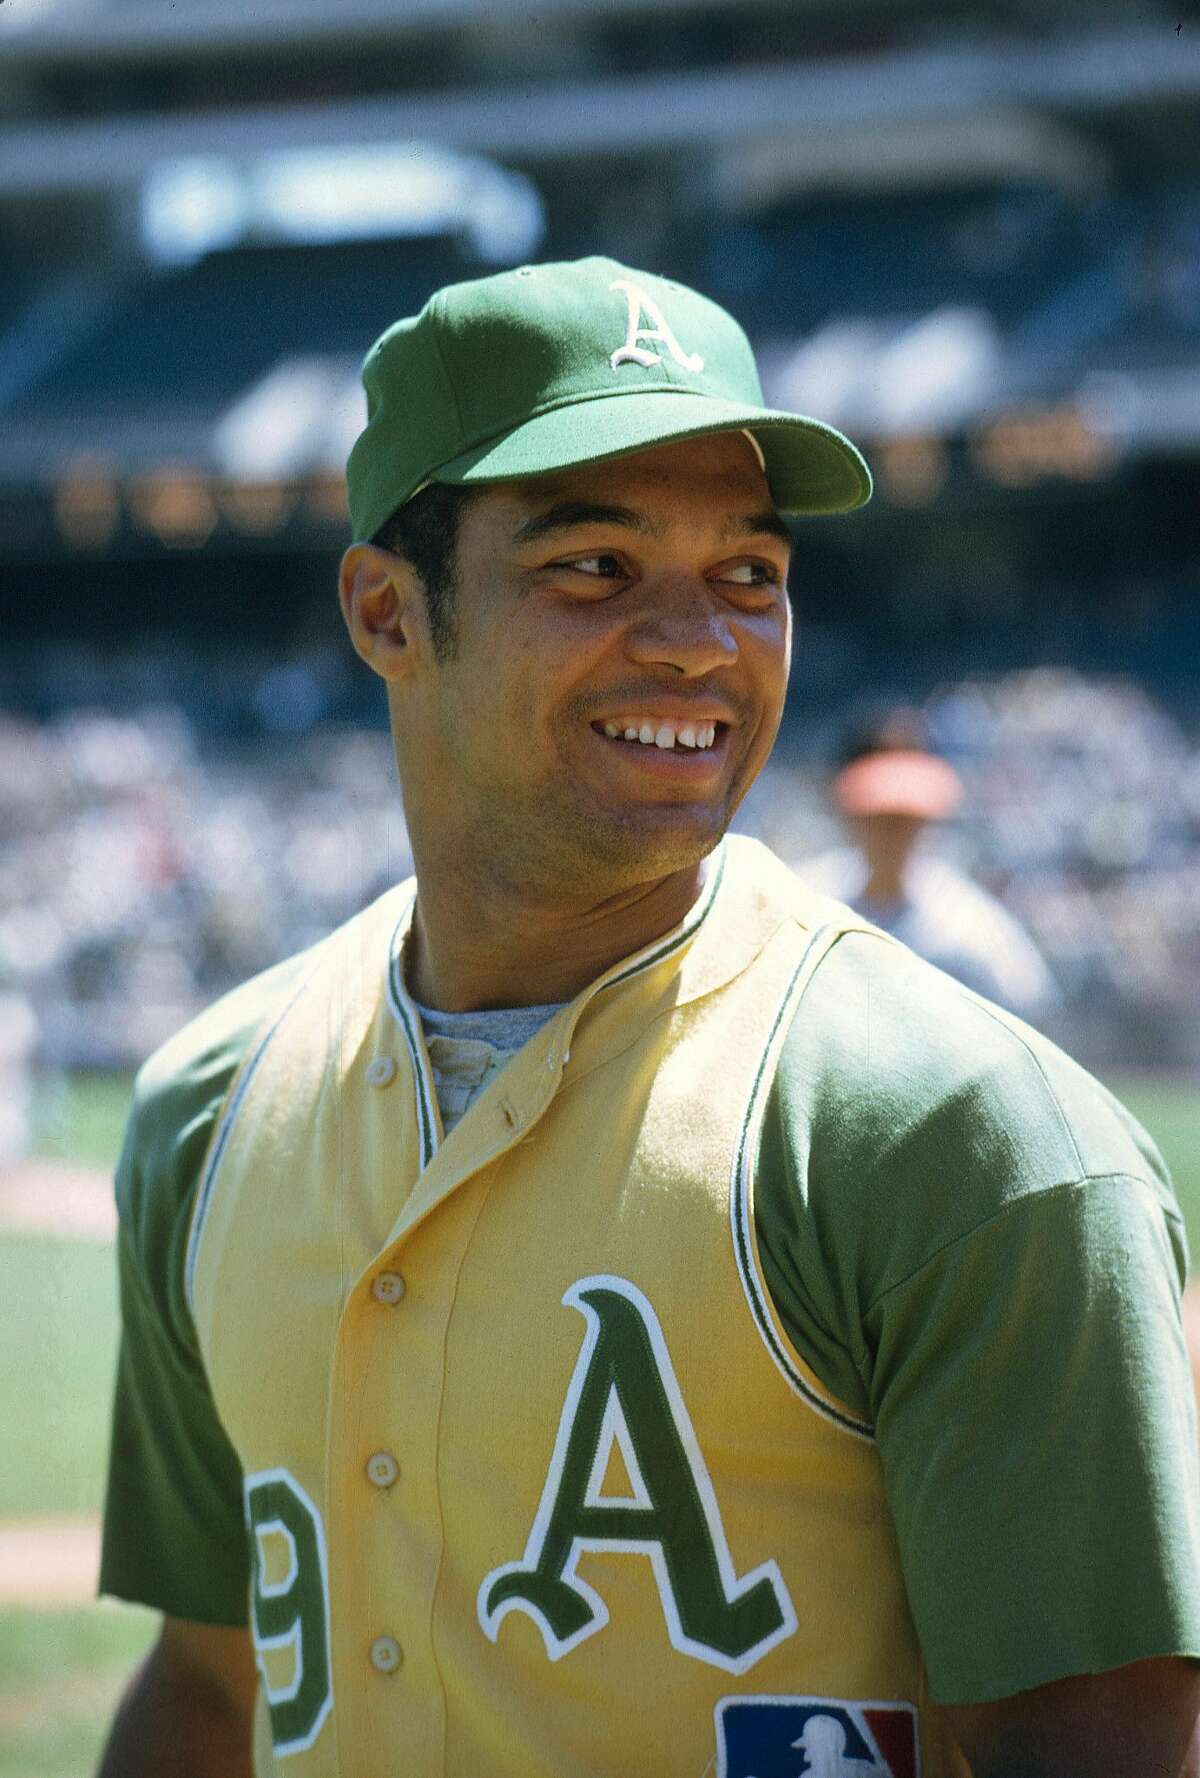 OAKLAND, CA - CIRCA 1969: Reggie Jackson #9 of the Oakland Athletics looks on smiling prior to the start of a Major League Baseball game circa 1969 at Oakland-Alameda County Coliseum in Oakland, California. Jackson played for the Athletics from 1967-75, 8